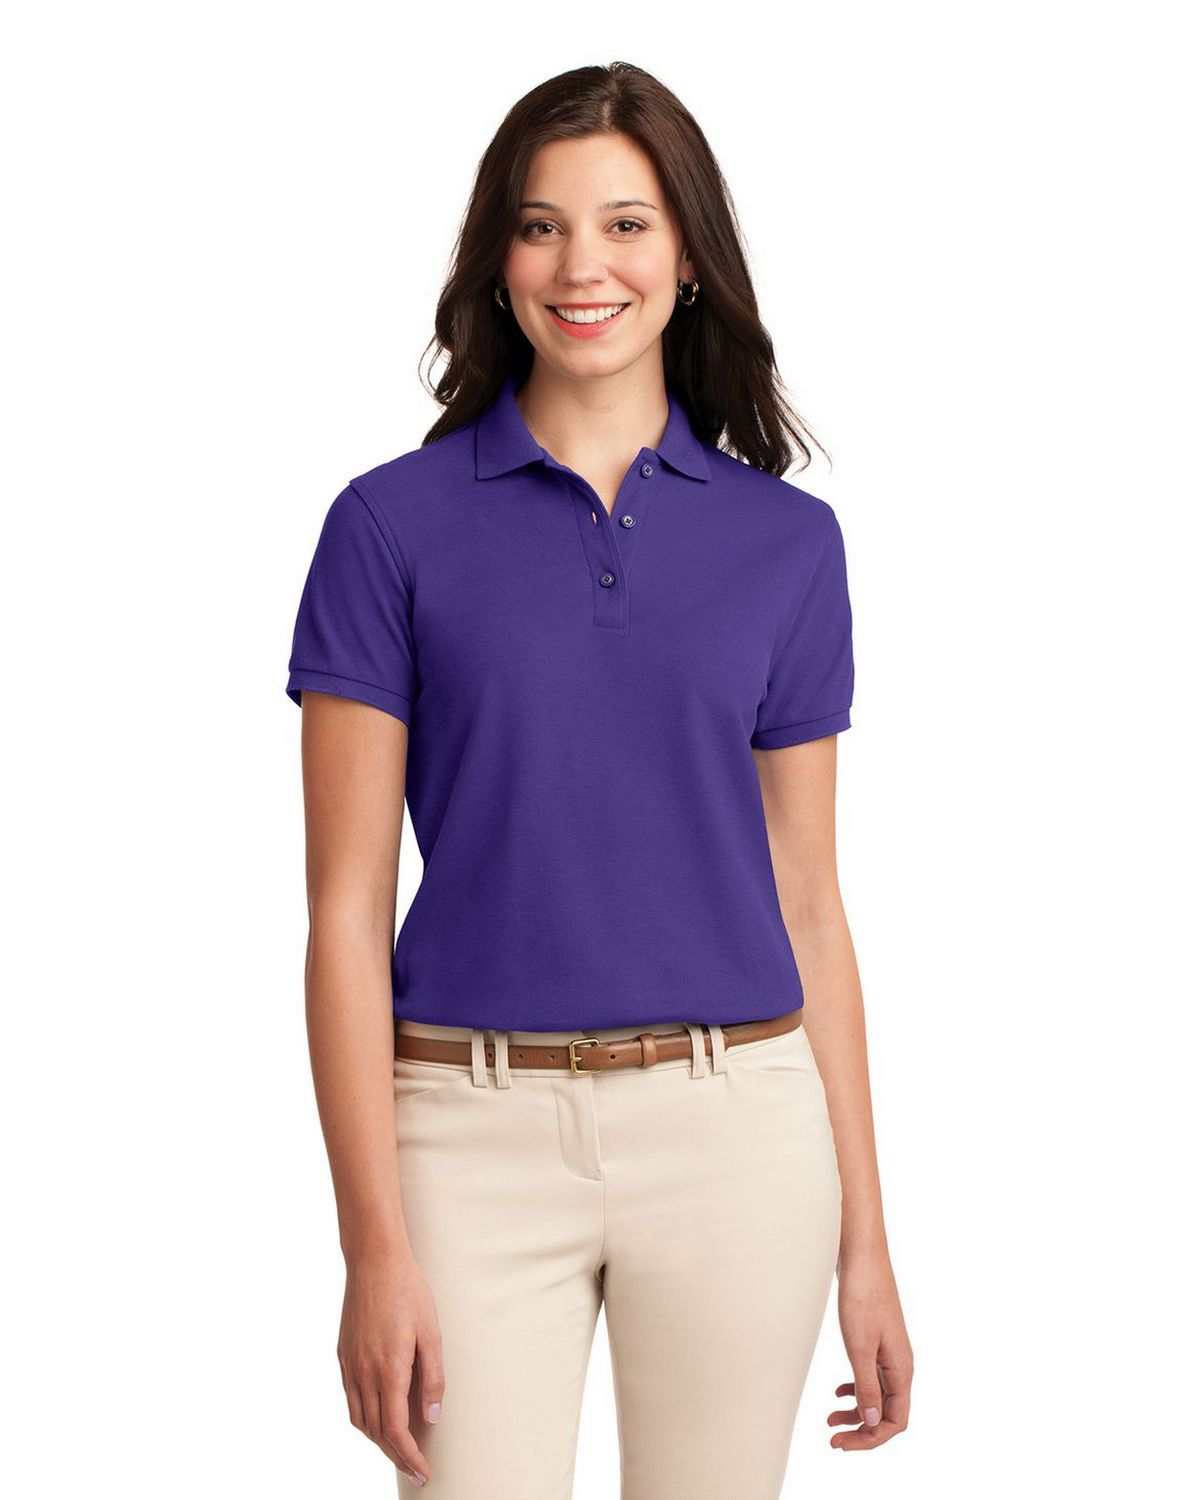 Port Authority L500 Women's Silk Touch Polo - Purple - XS #silk